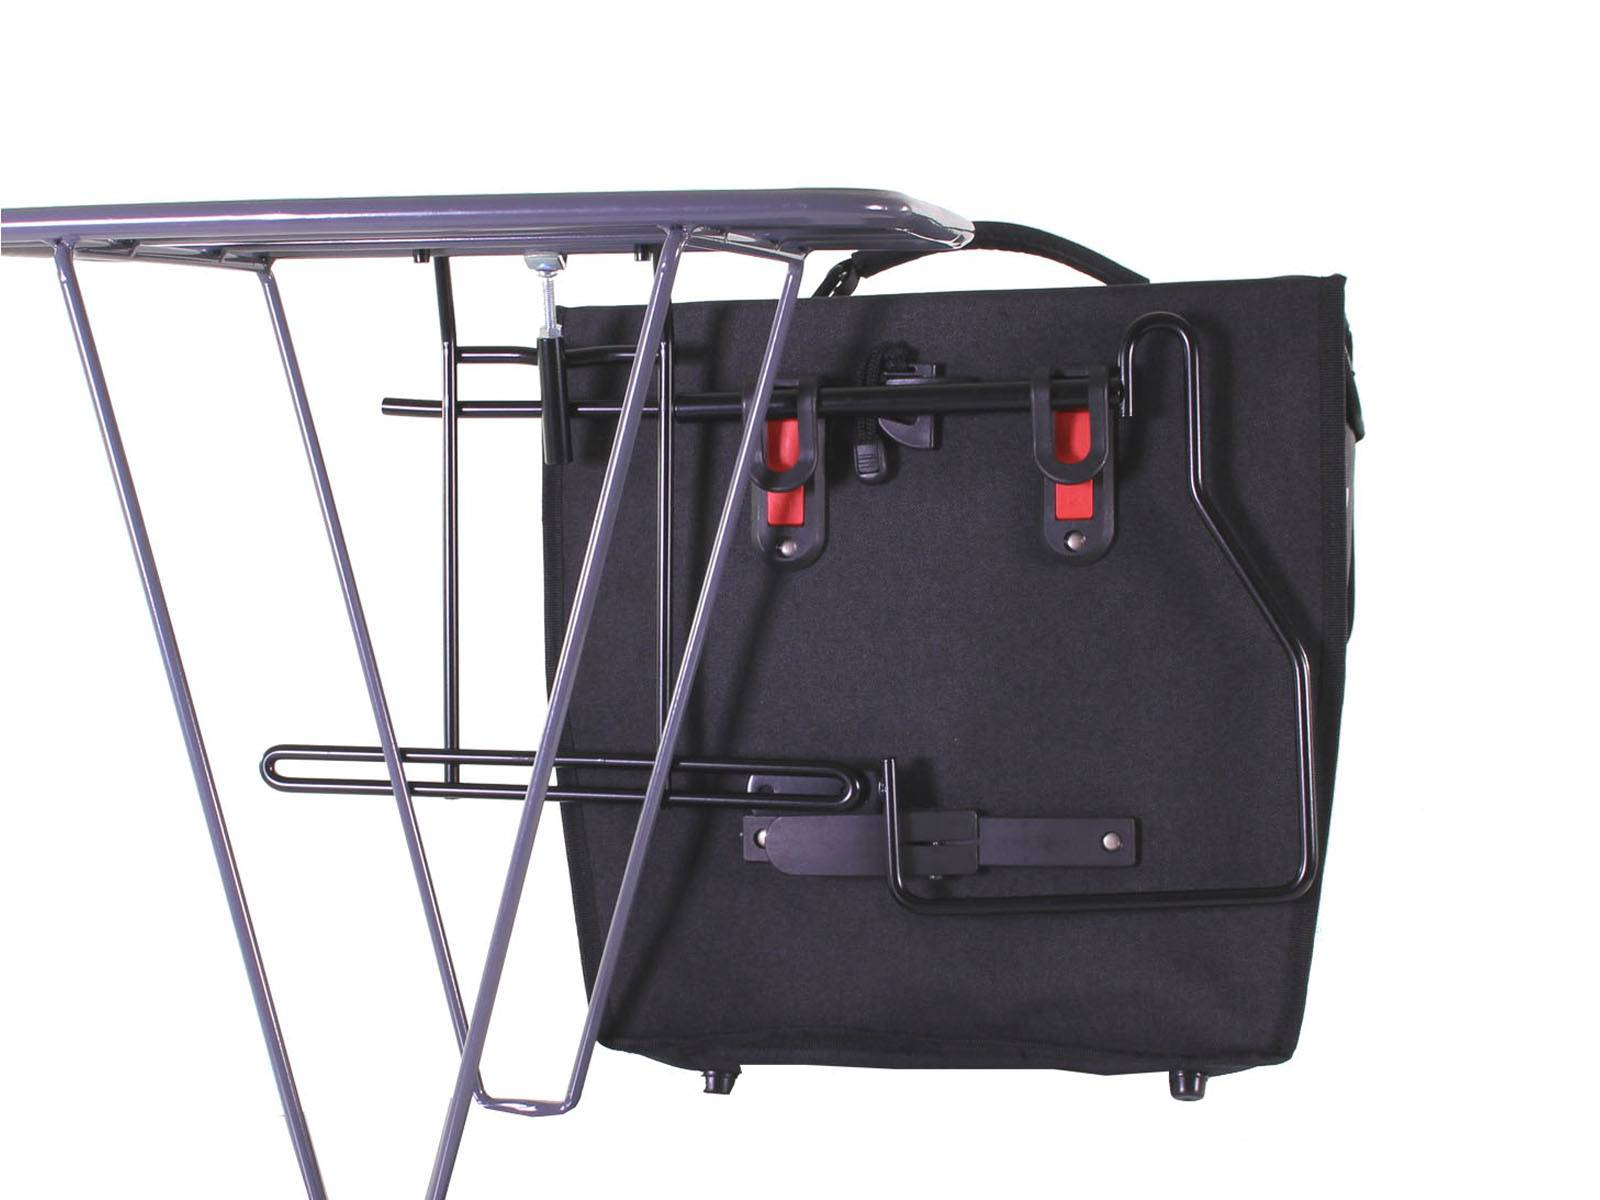 Steco Pakaf-Mee porte-bagages outil d'extension